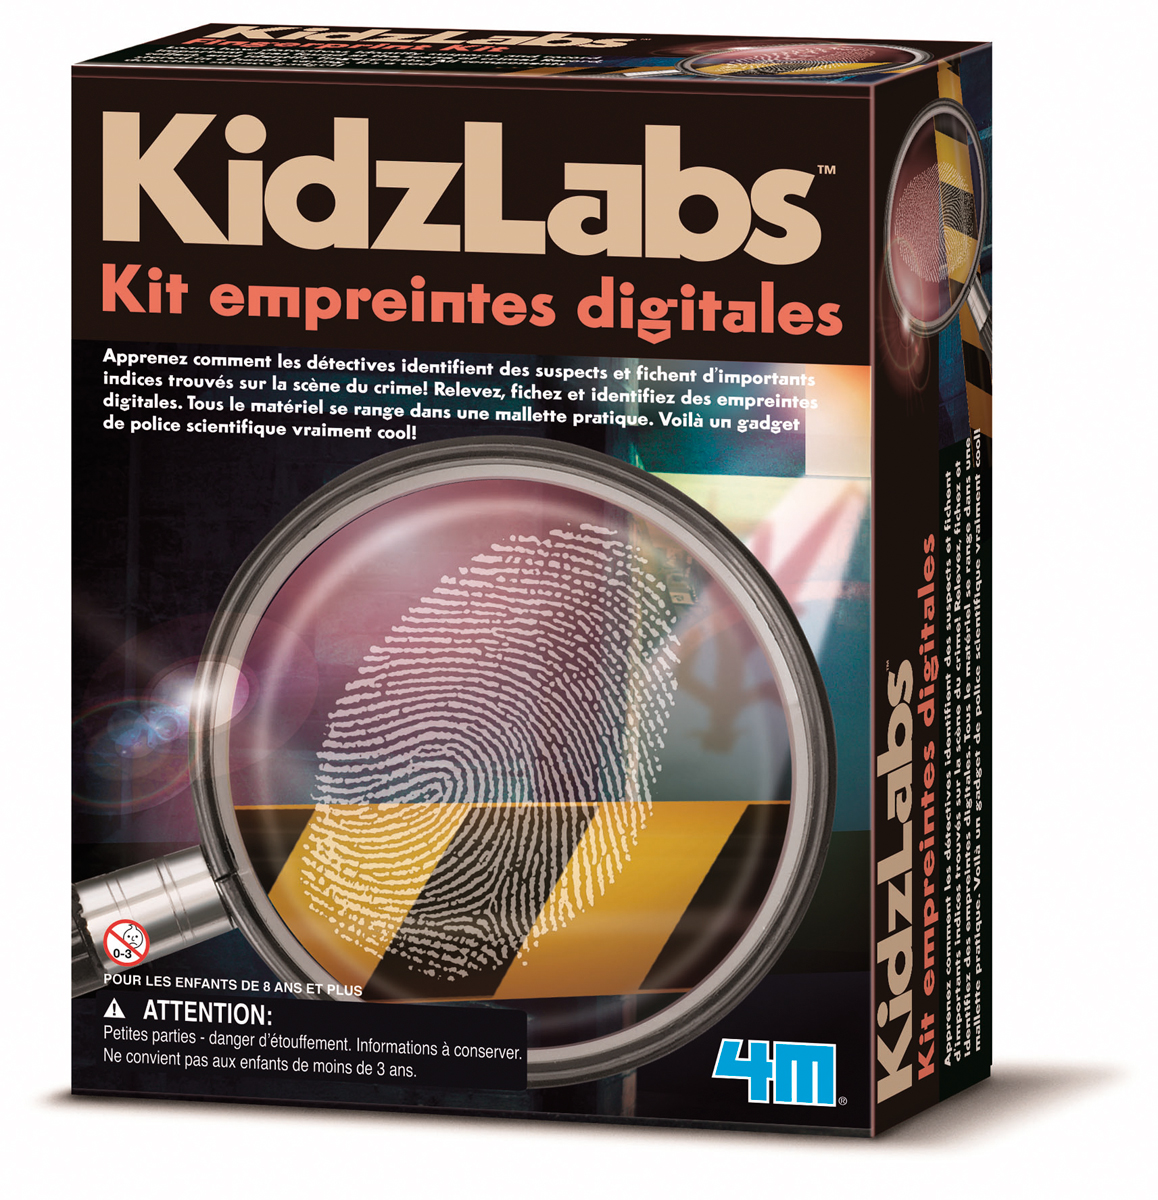 Kit empreintes digitales - jeu scientifique Kidzlab